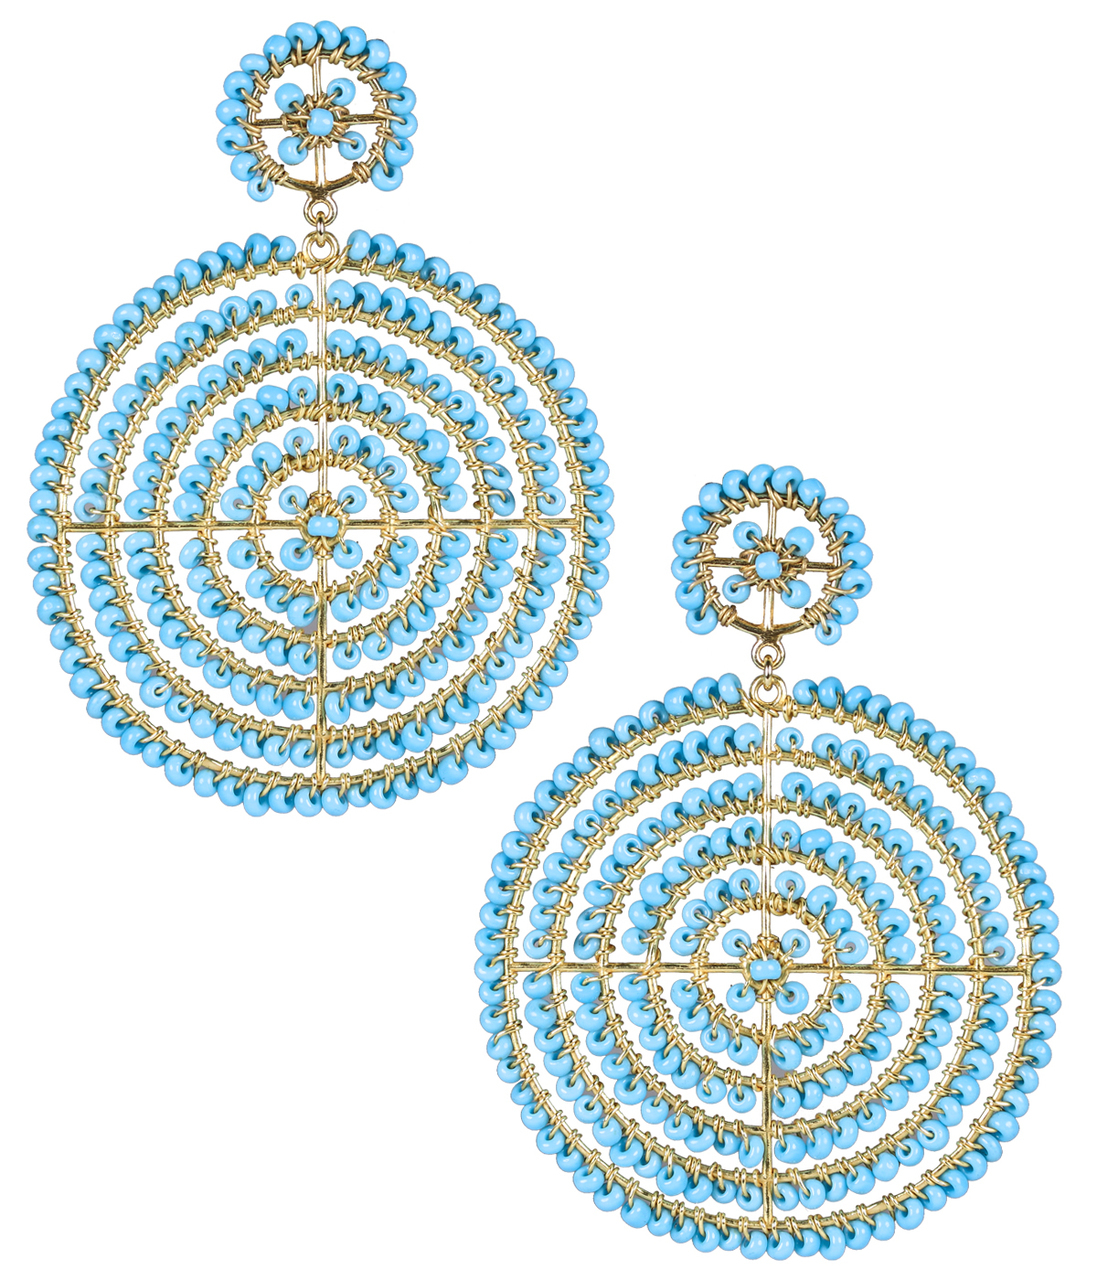 6fb176306 Lisi Lerch Disk Turquoise Earrings | HAUTEheadquarters